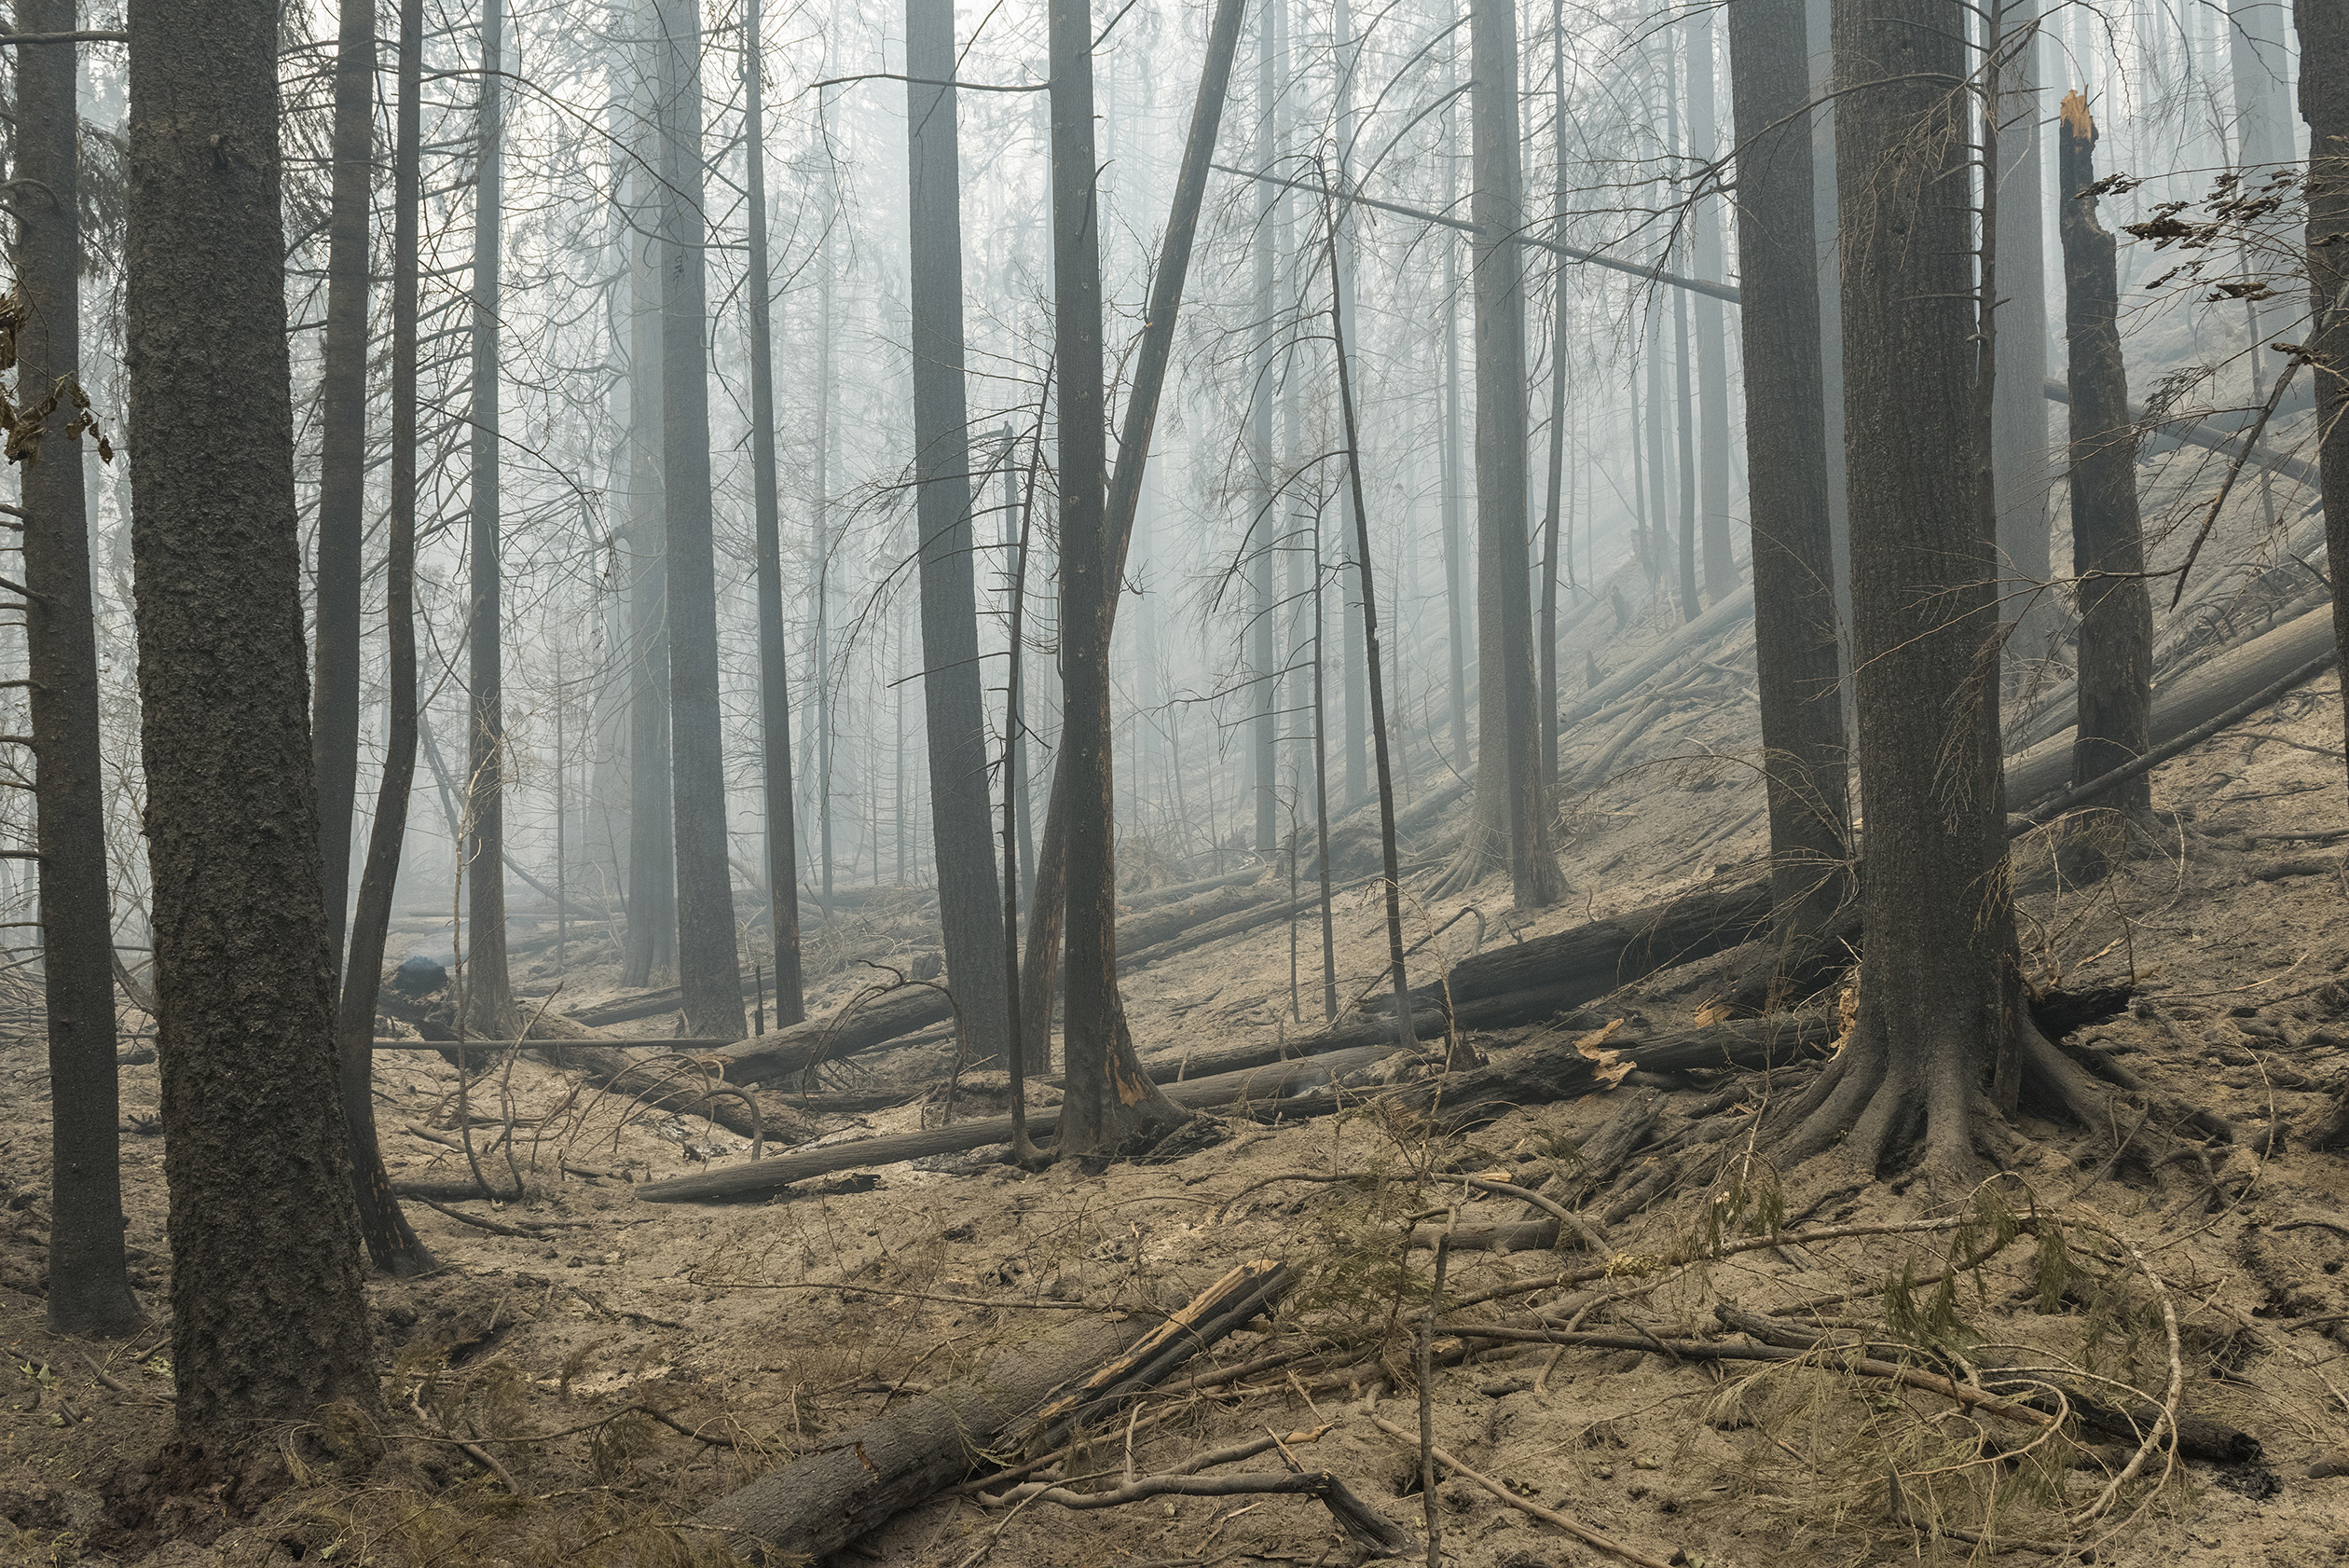 Smoke hangs over the charred trees and barren soil of a badly burned forest.